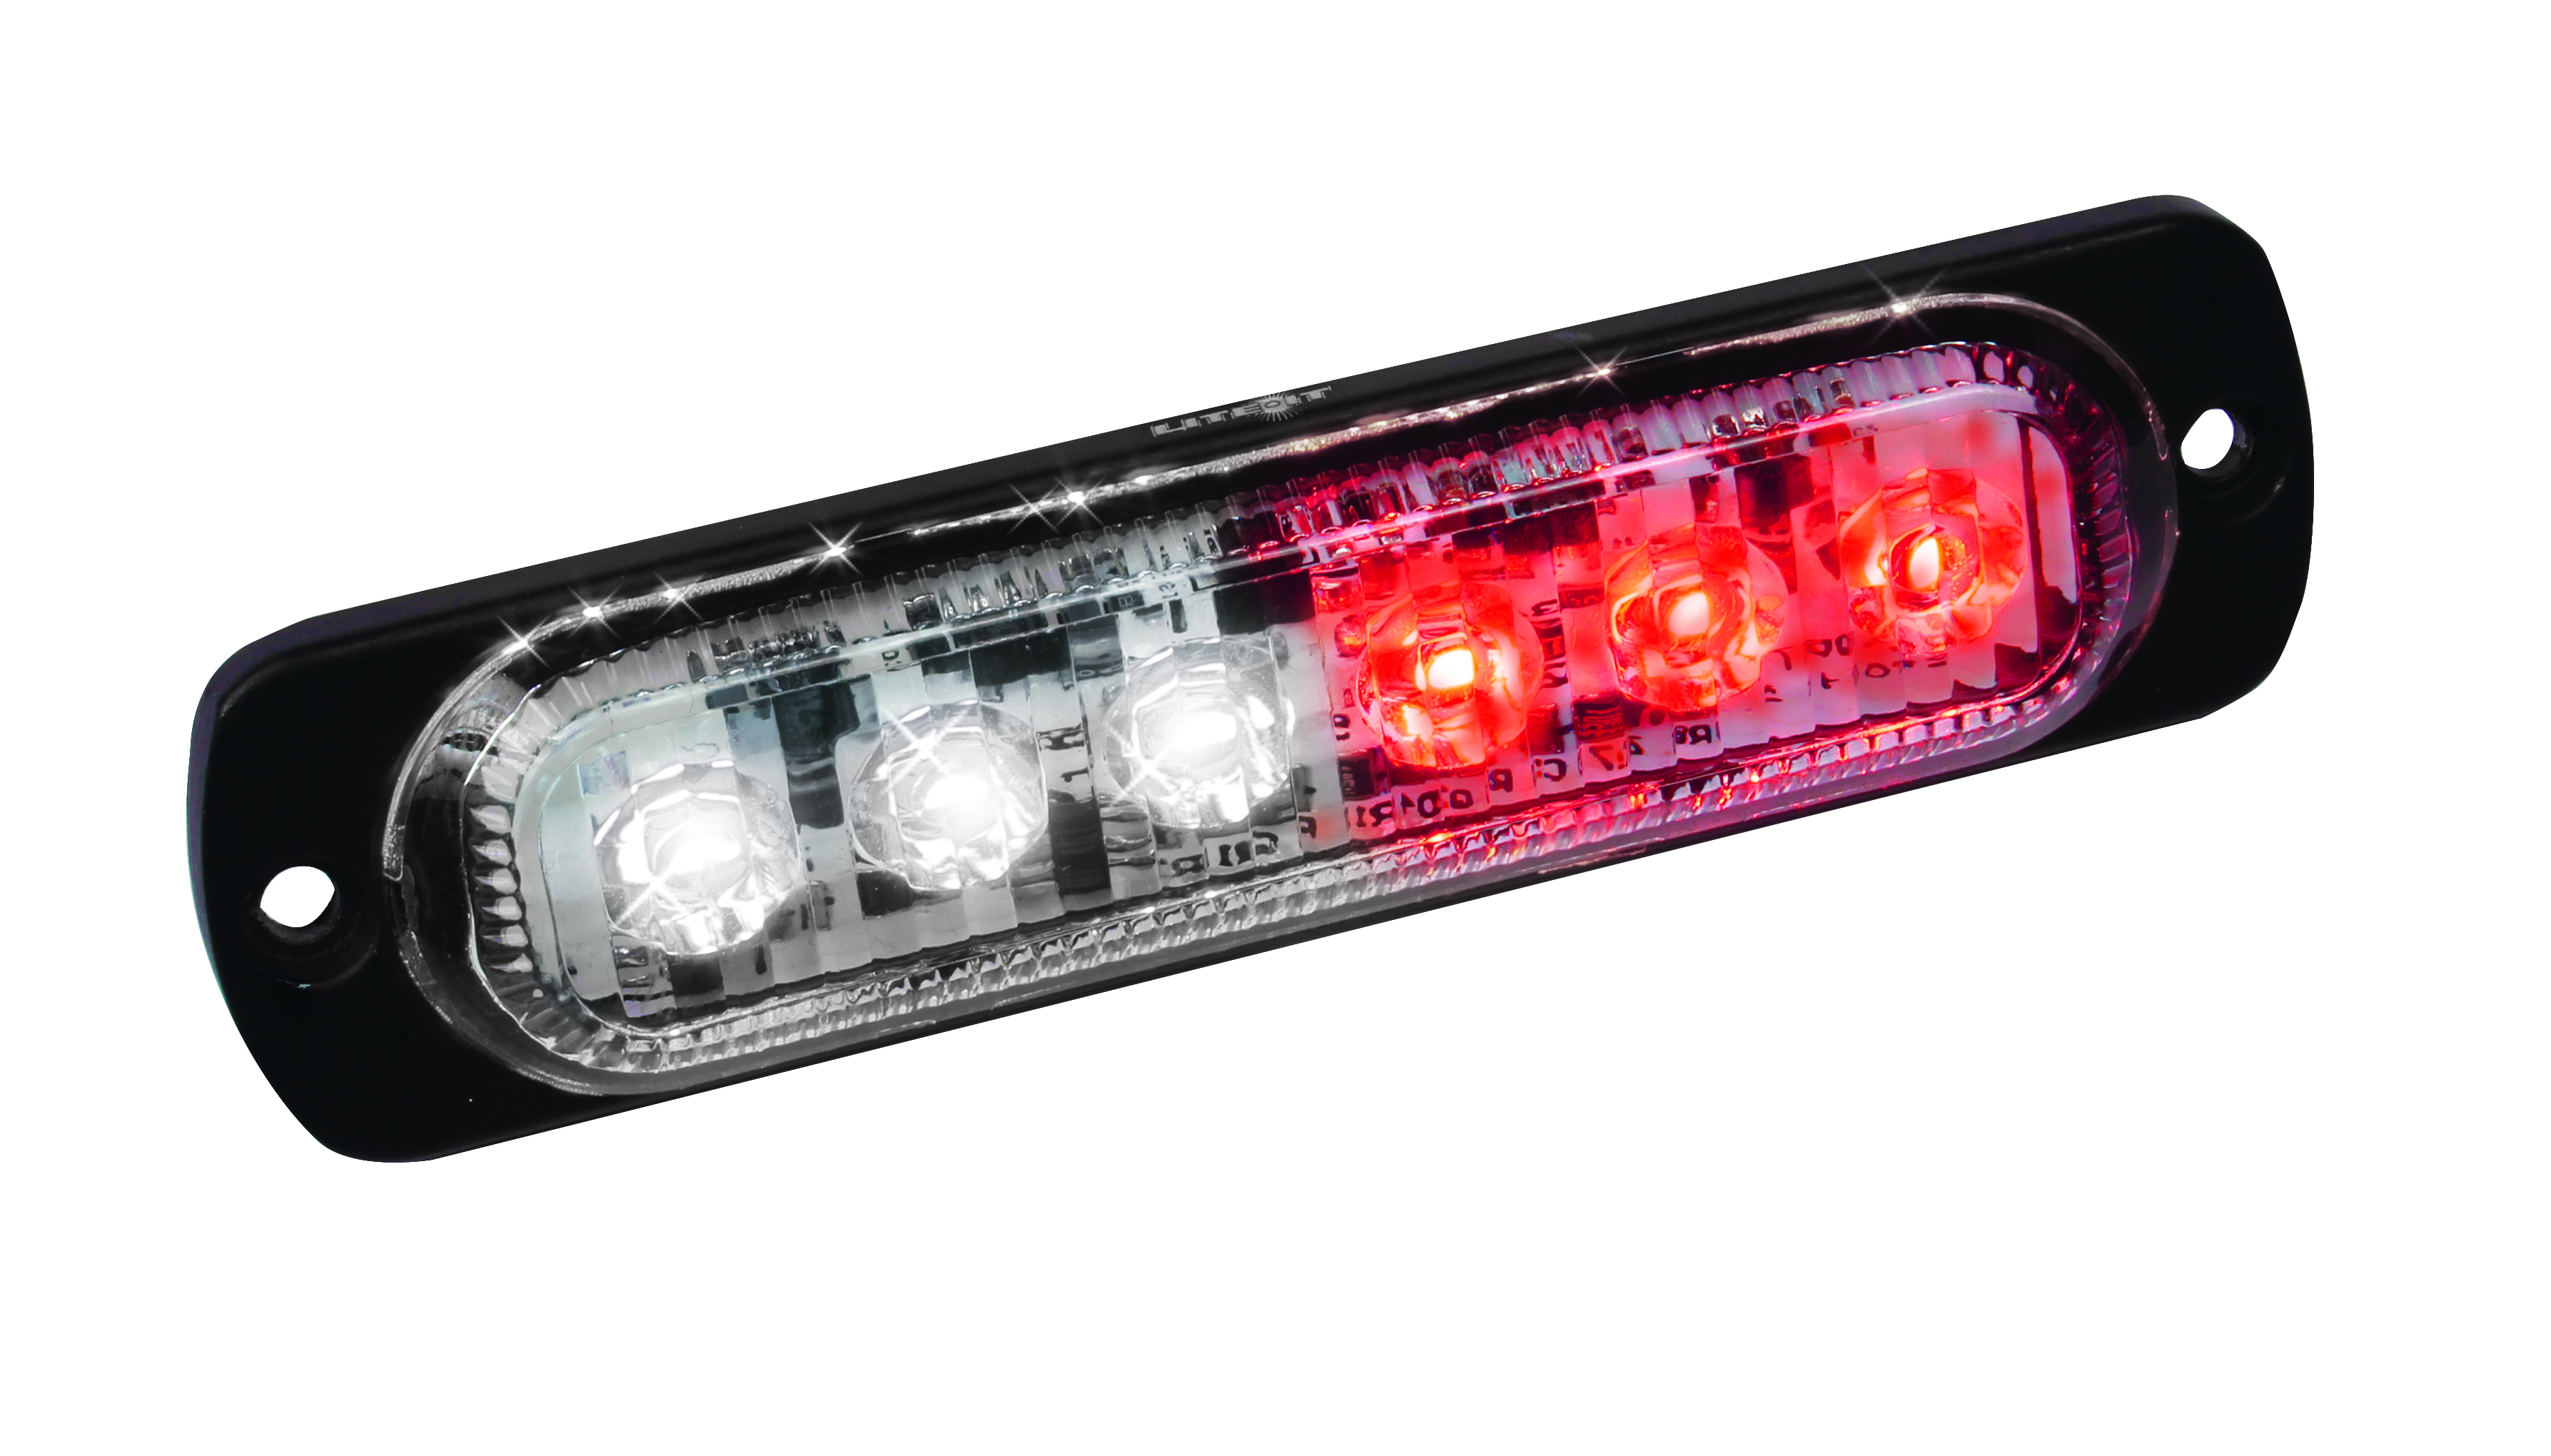 Led Low Profile Strobes With 19 Flash Patterns Custer Products Wig Wag Flasher Wiring Diagram